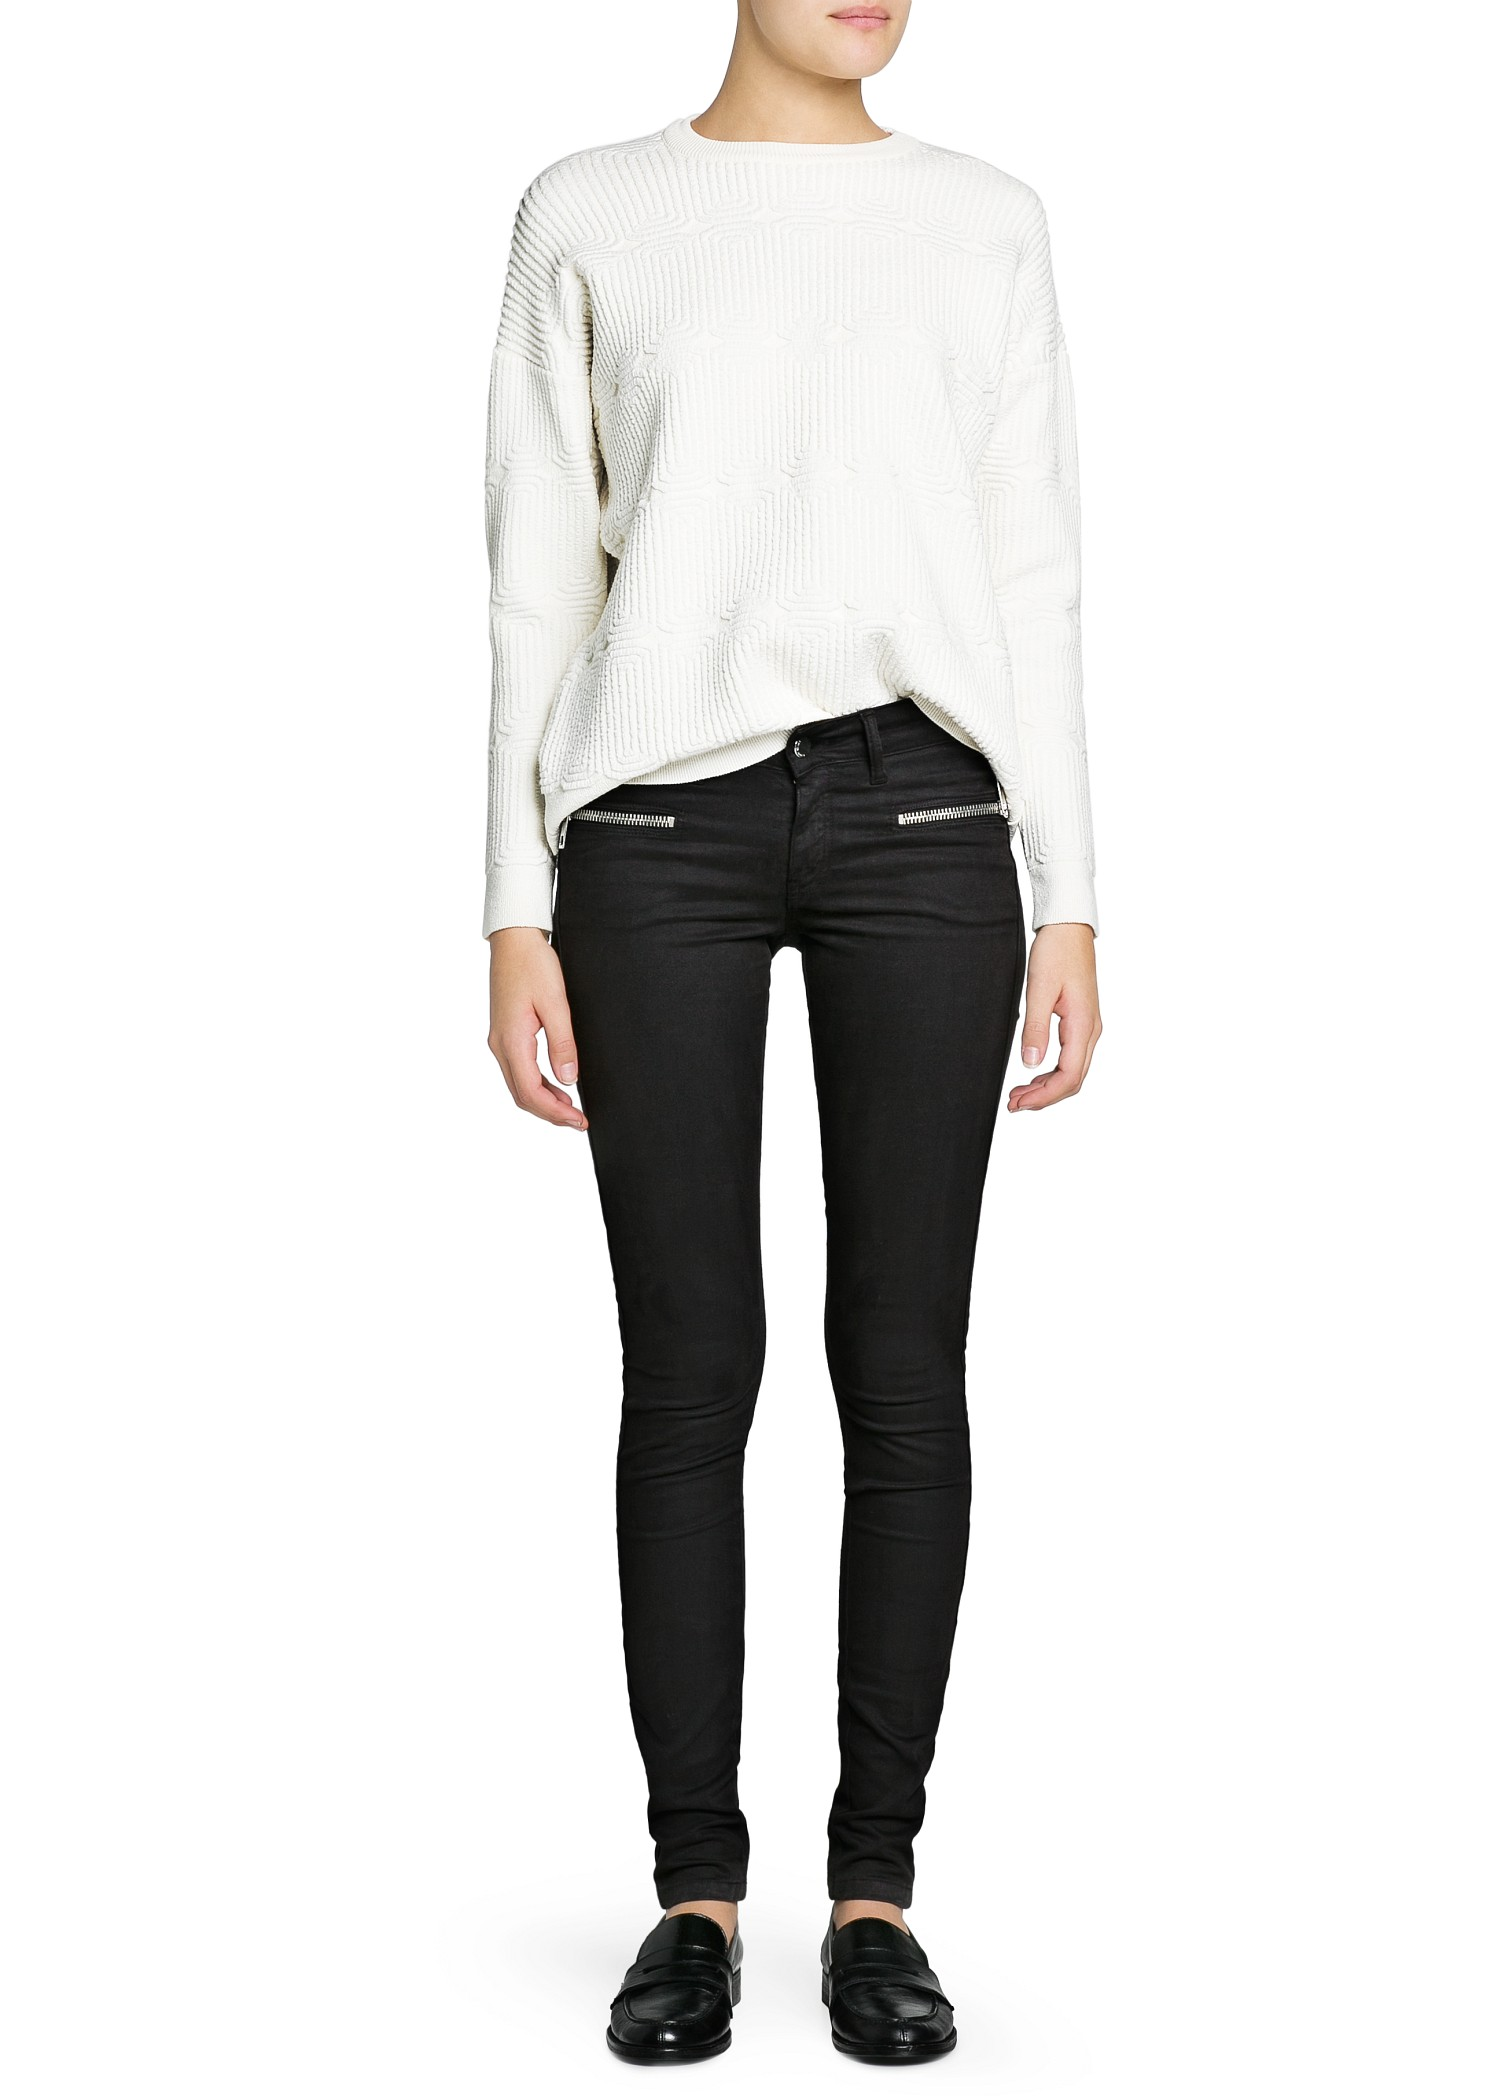 Mango Super Slim Fit Zip Black Jeans in Black | Lyst